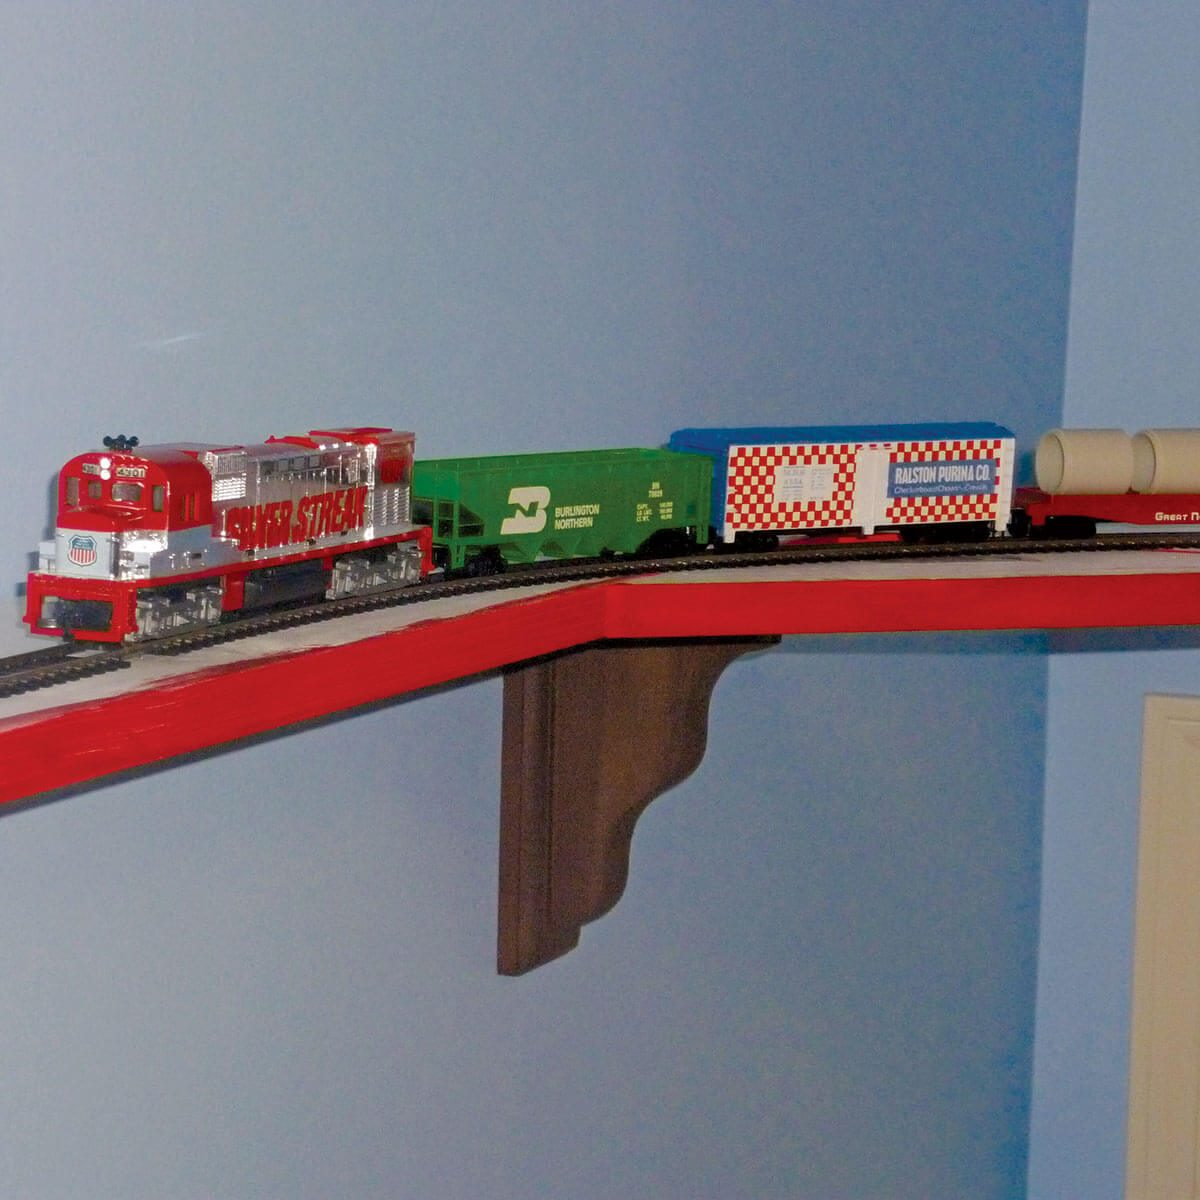 Bedroom train track